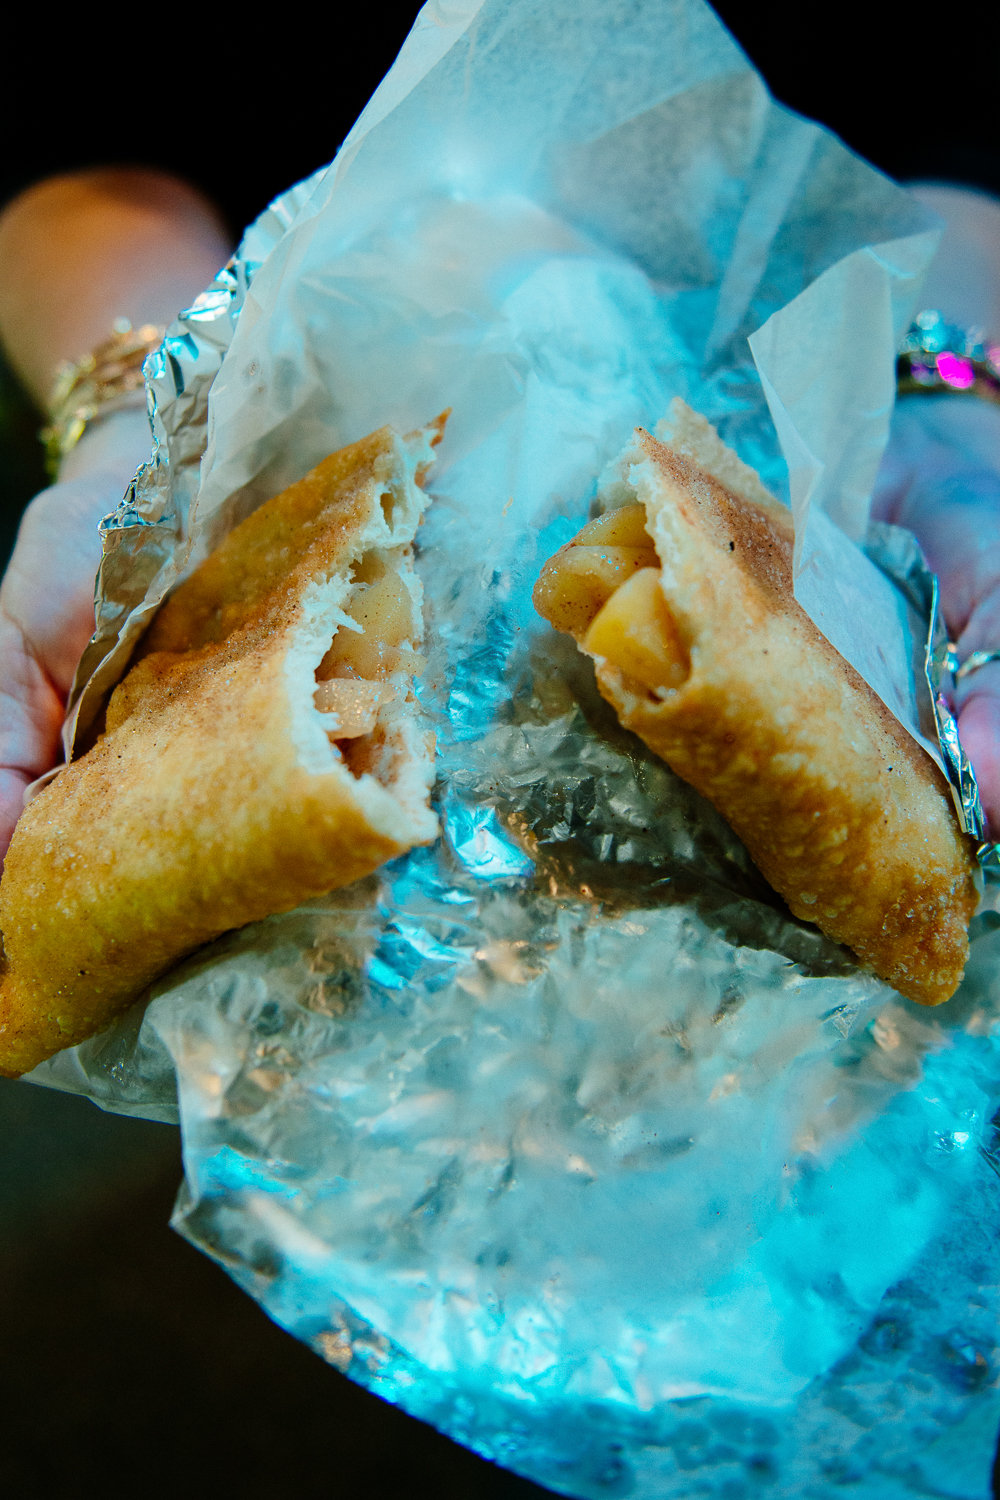 Delicious Apple Jack fair hand pies